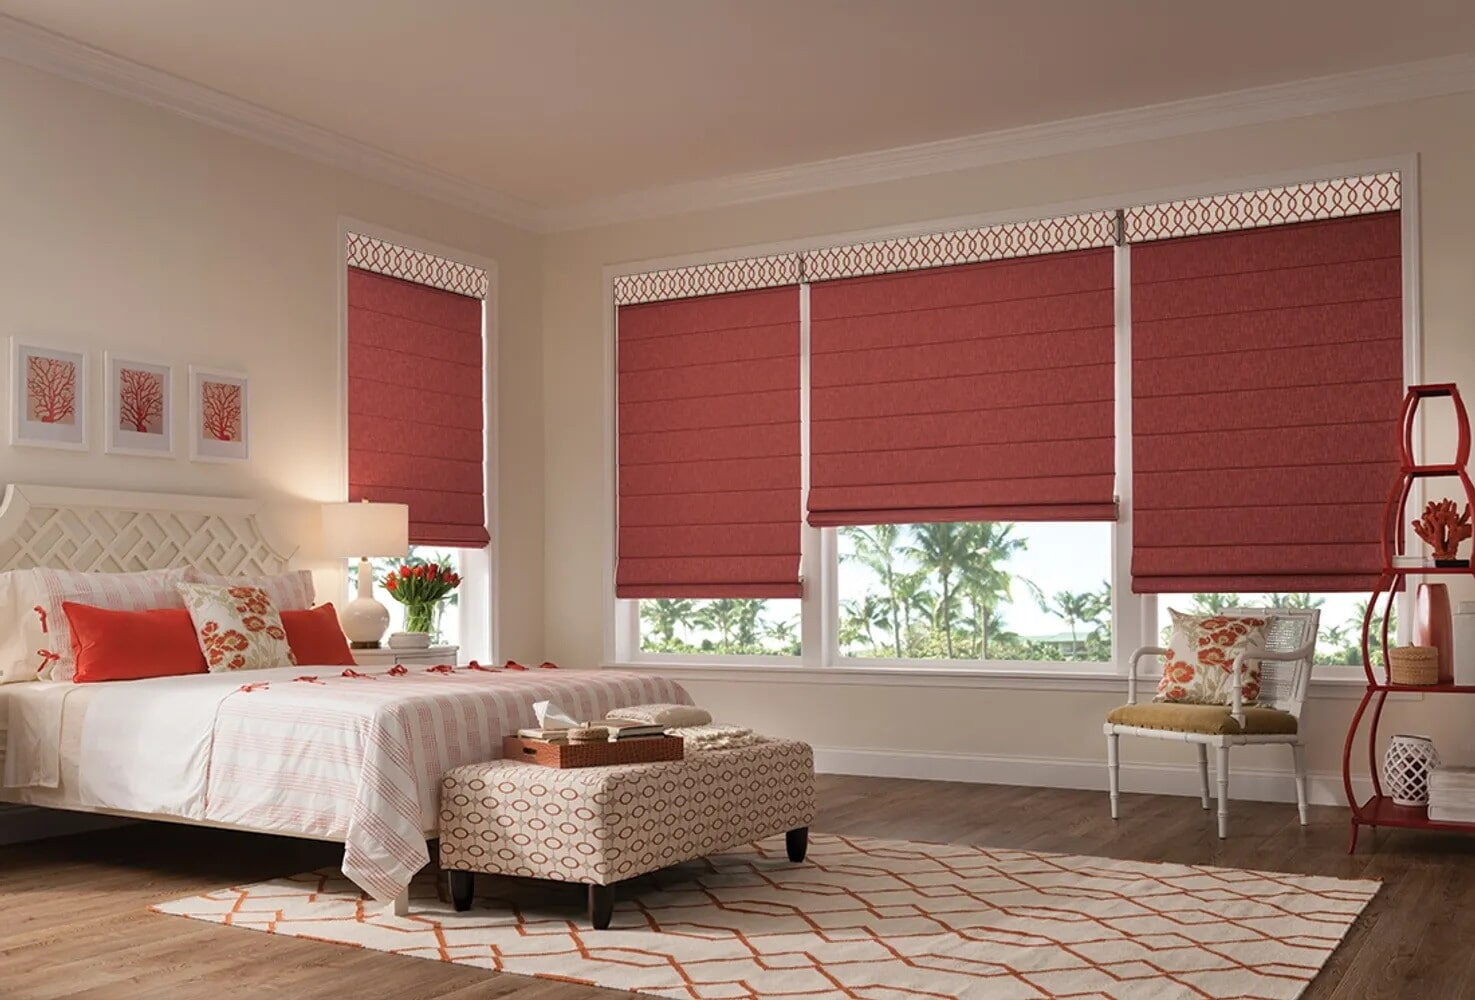 Soft red shades in Berwick, PA from Kissingers Floor & Wall